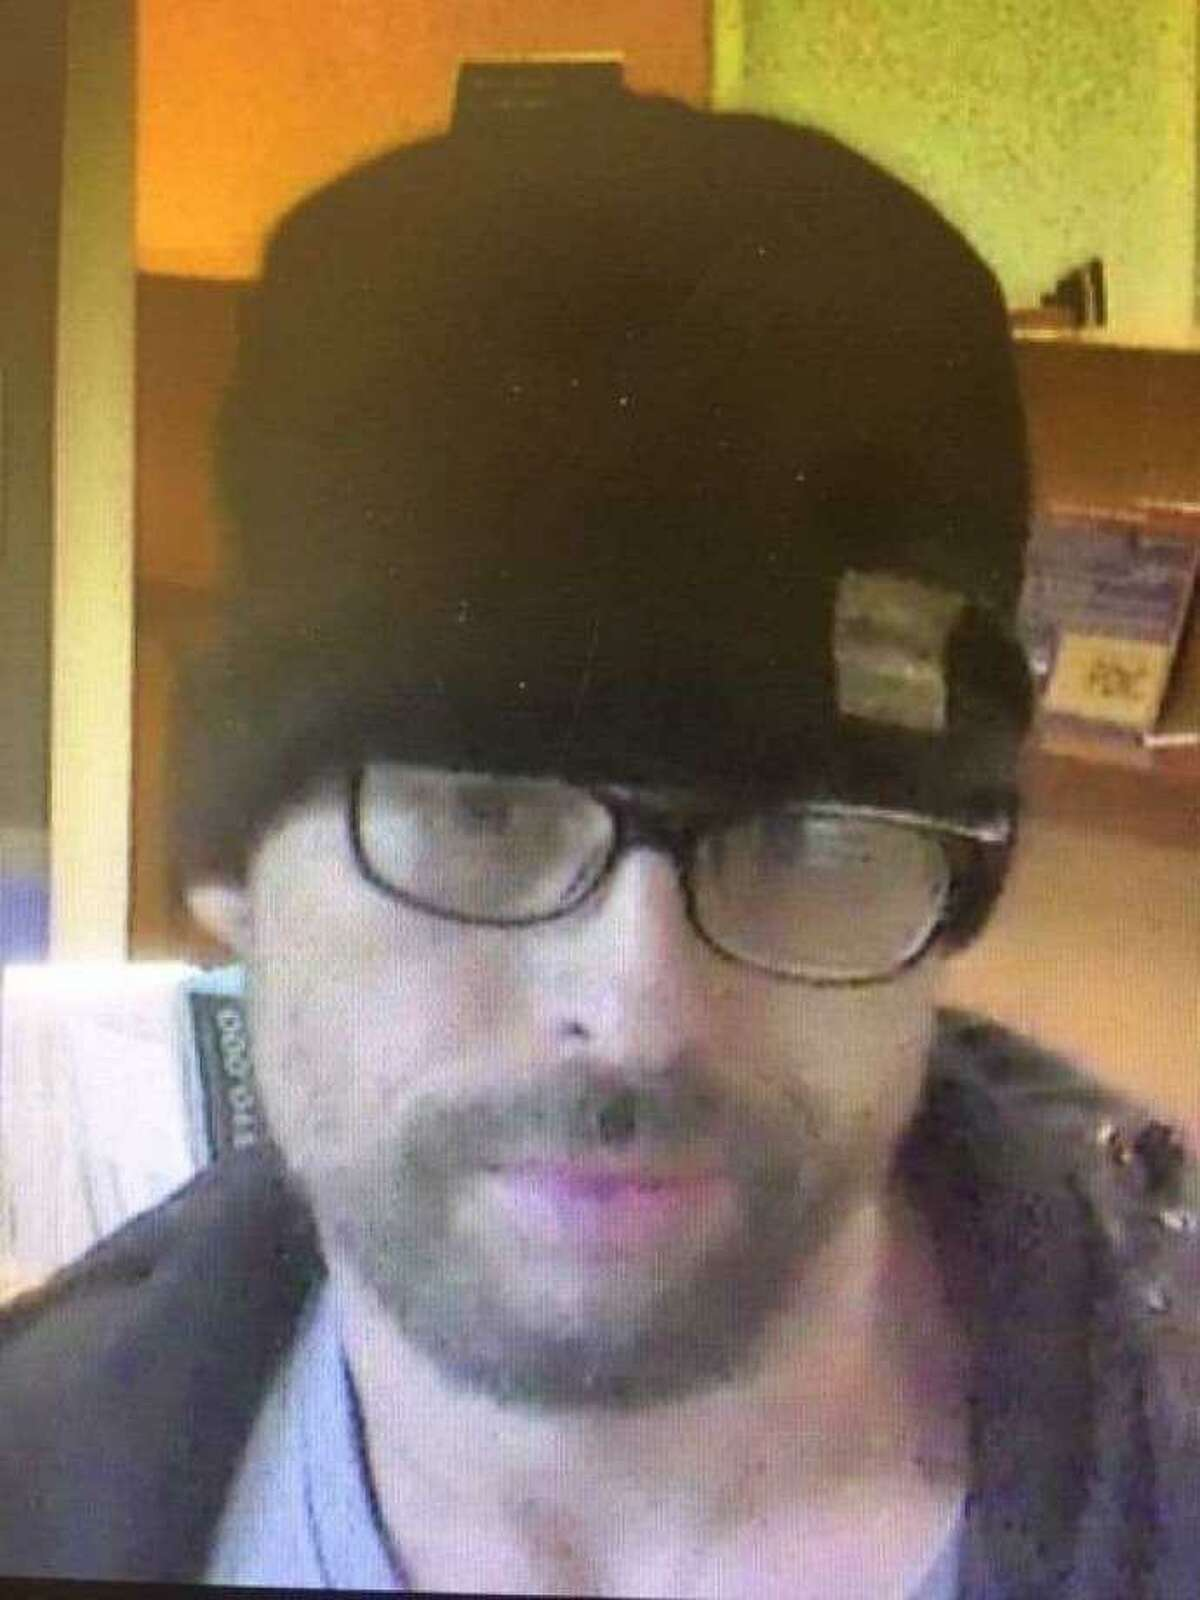 Video surveillance footage shows the suspect in a May 14 robbery of Liberty Bank in Beacon Falls.